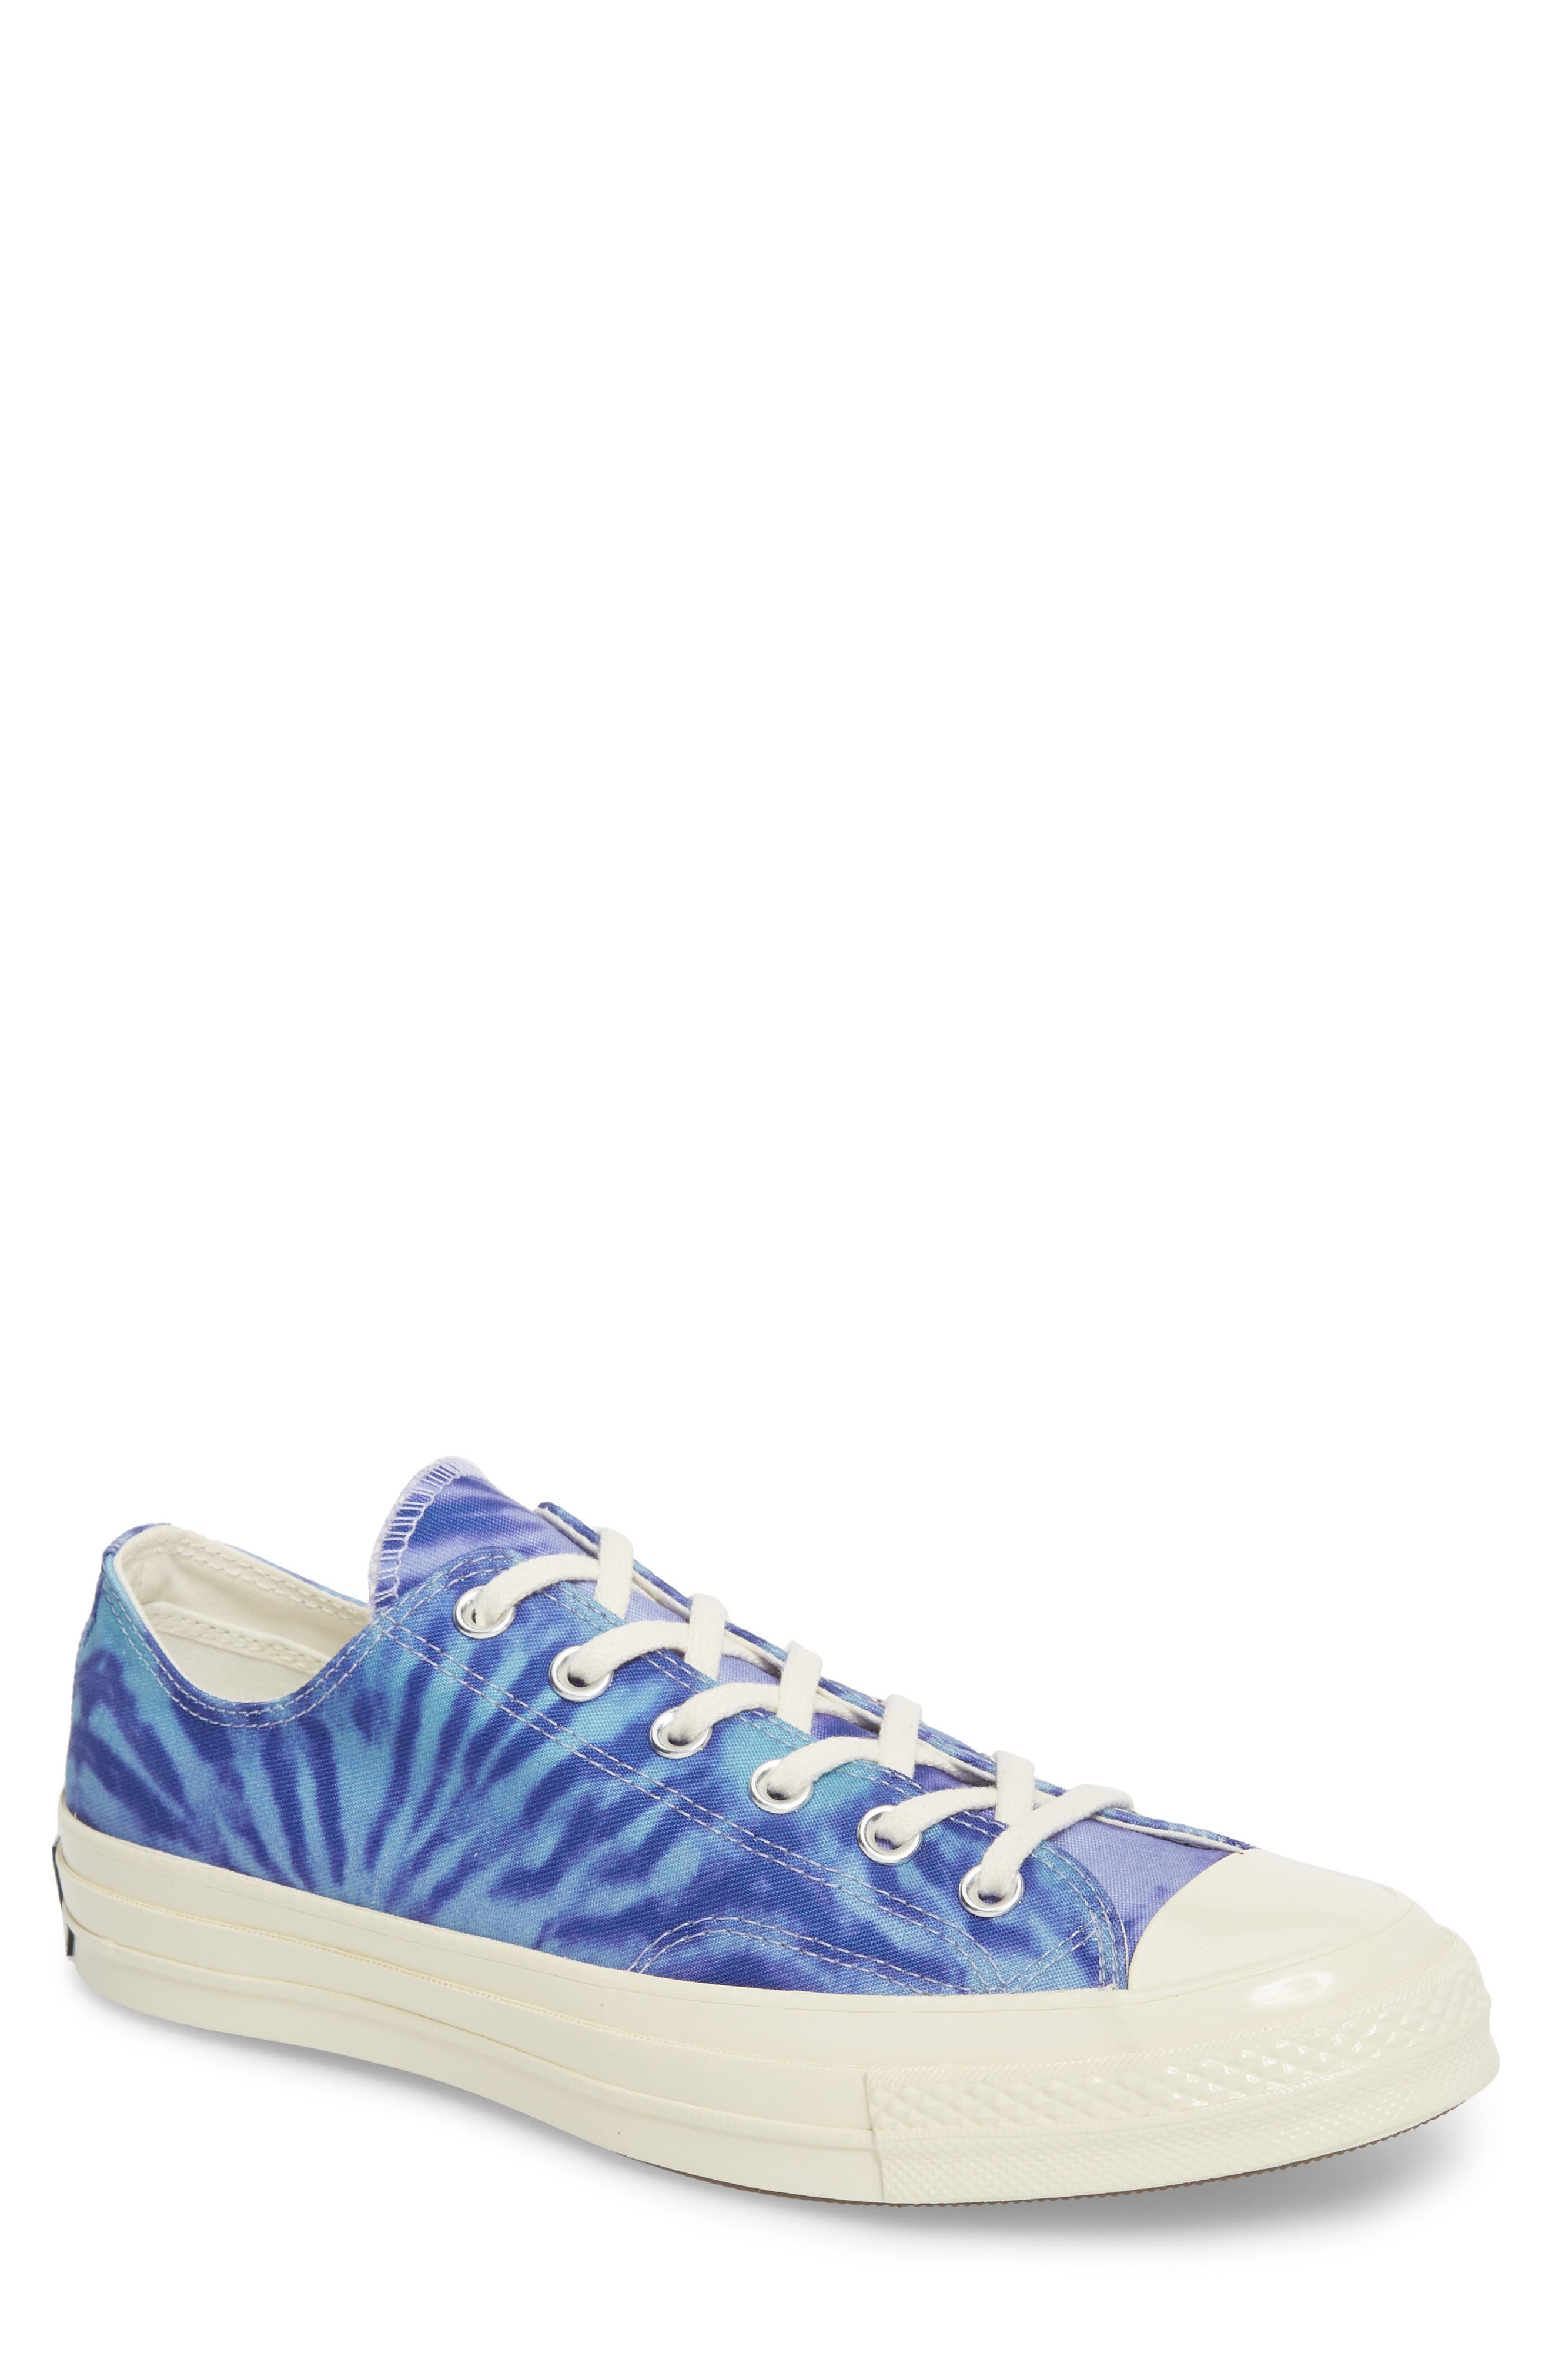 Chuck Taylor<sup>®</sup> All Star<sup>®</sup> 70 Tie Dye Low Top Sneaker,                             Main thumbnail 1, color,                             400